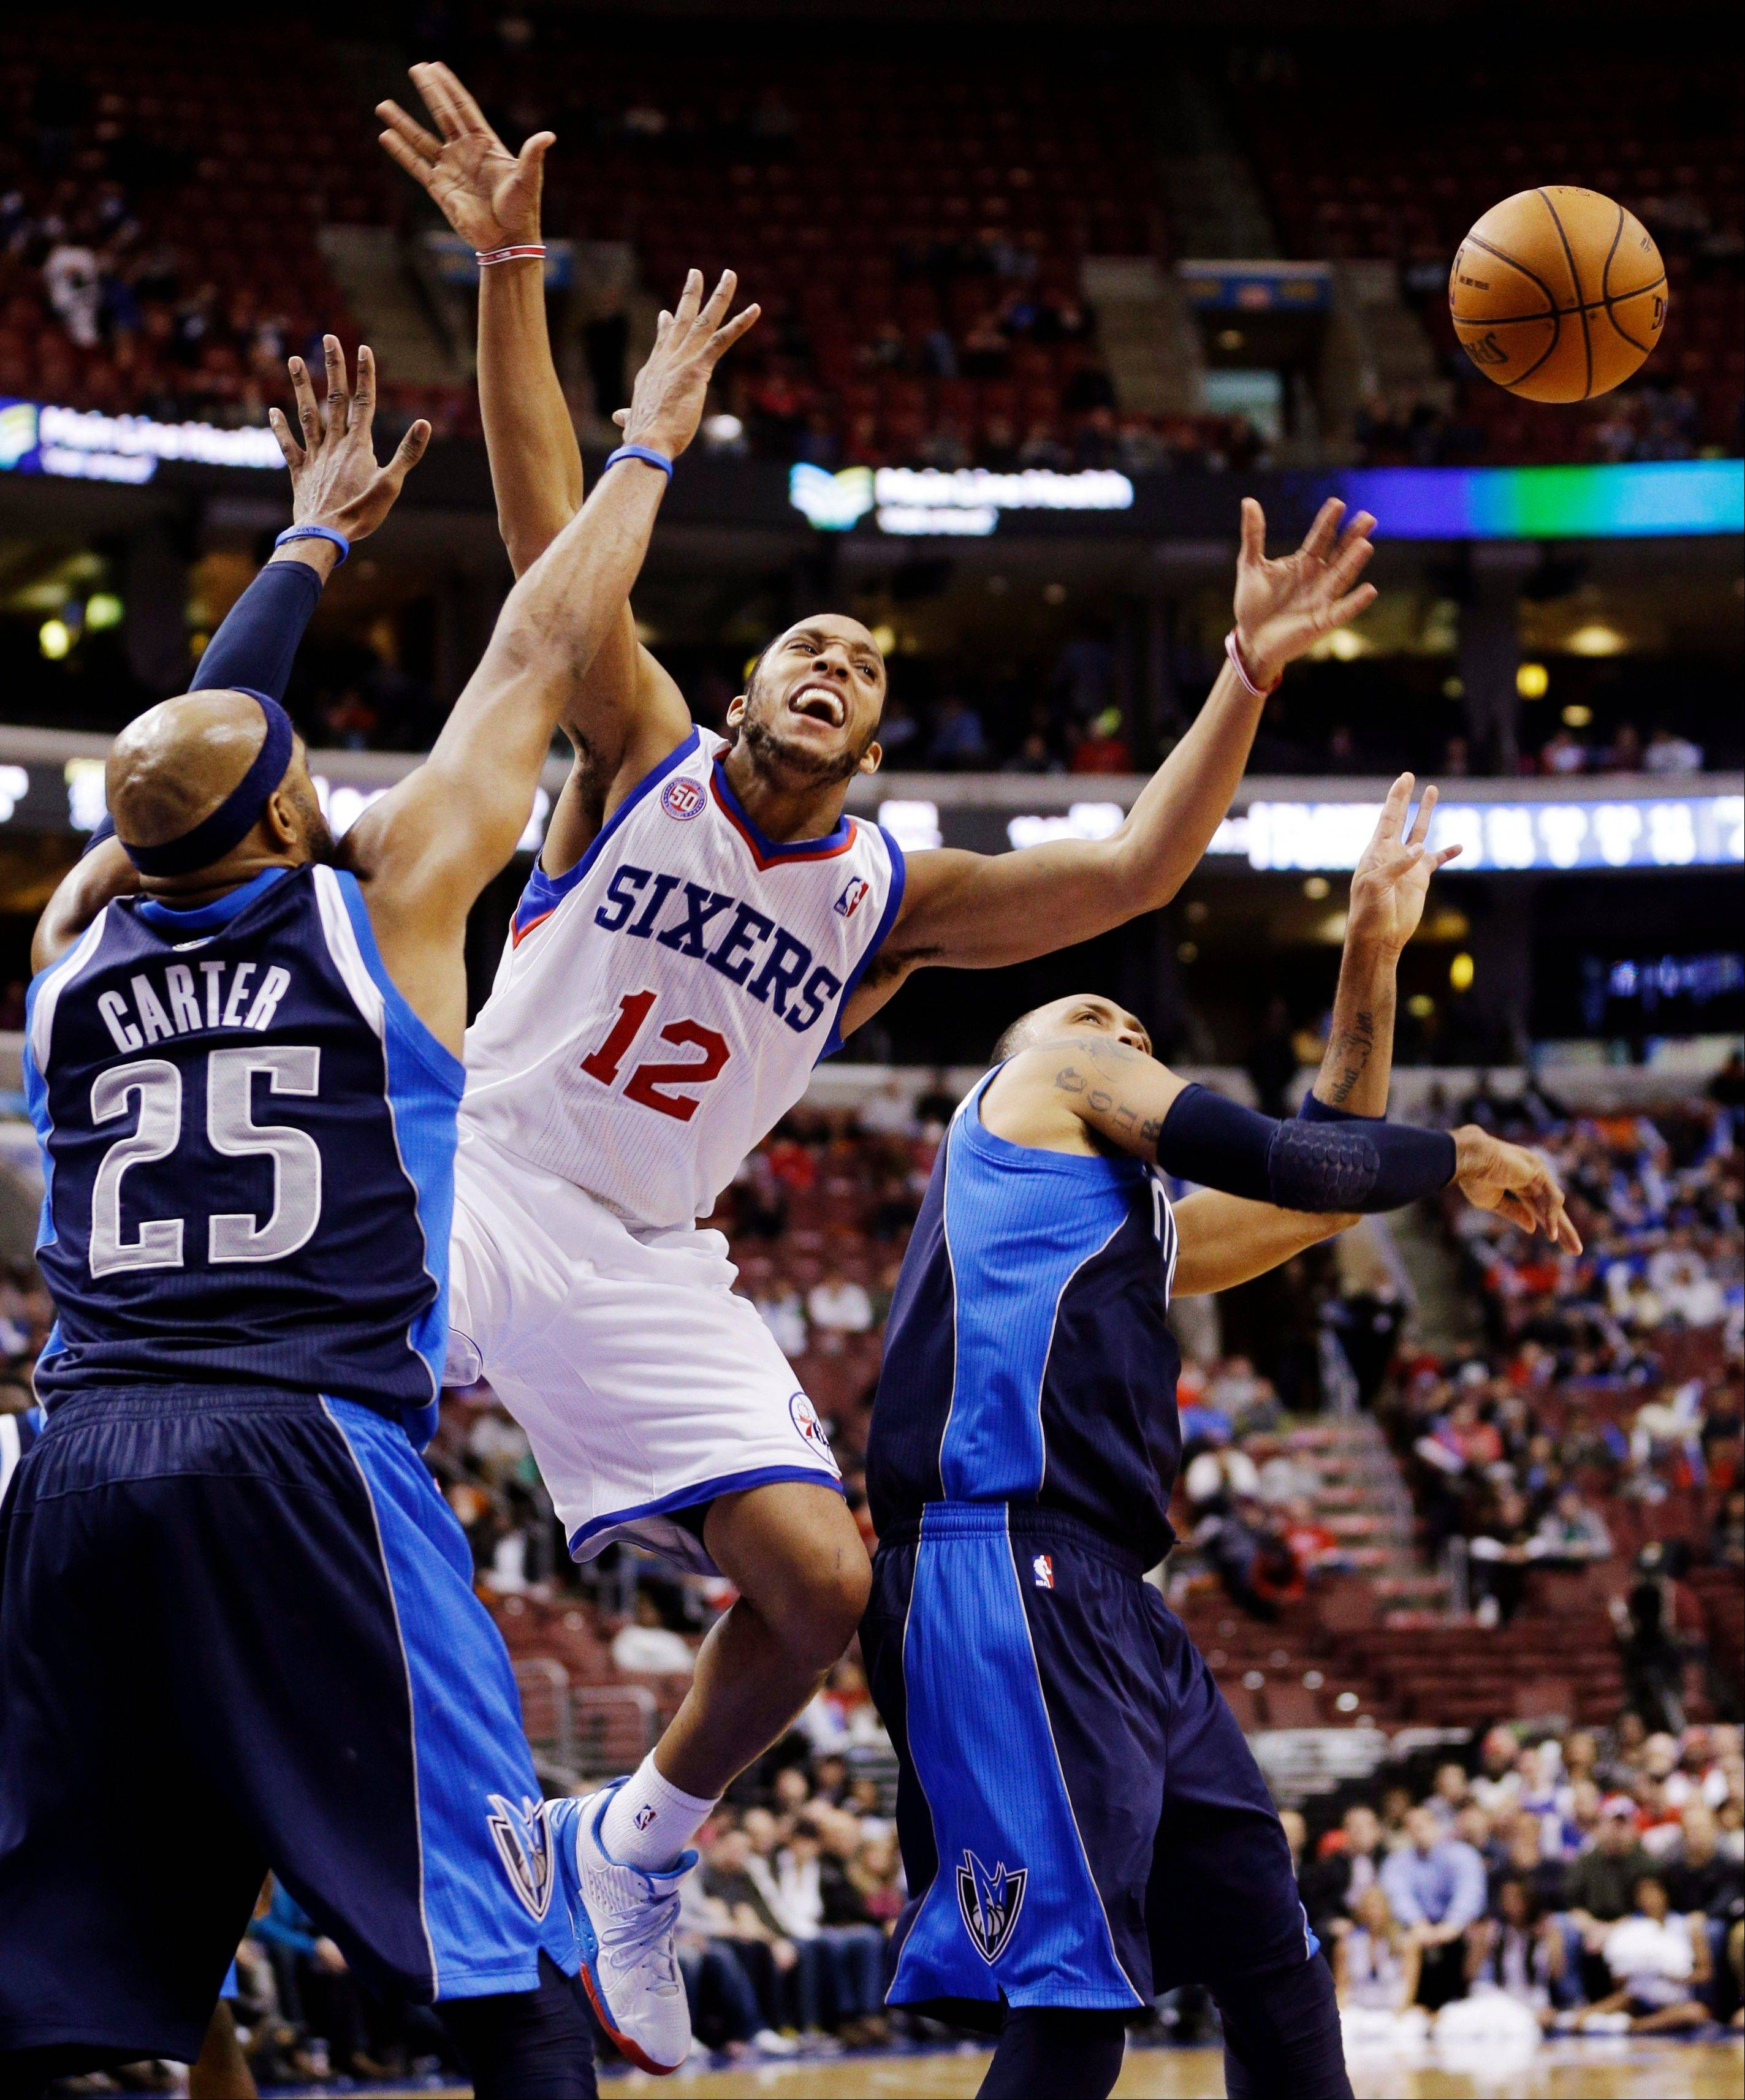 Philadelphia 76ers' Evan Turner, center, loses the ball against Dallas Mavericks' Vince Carter (25) and Shawn Marion Tuesday during the second half in Philadelphia. Philadelphia won 100-98.